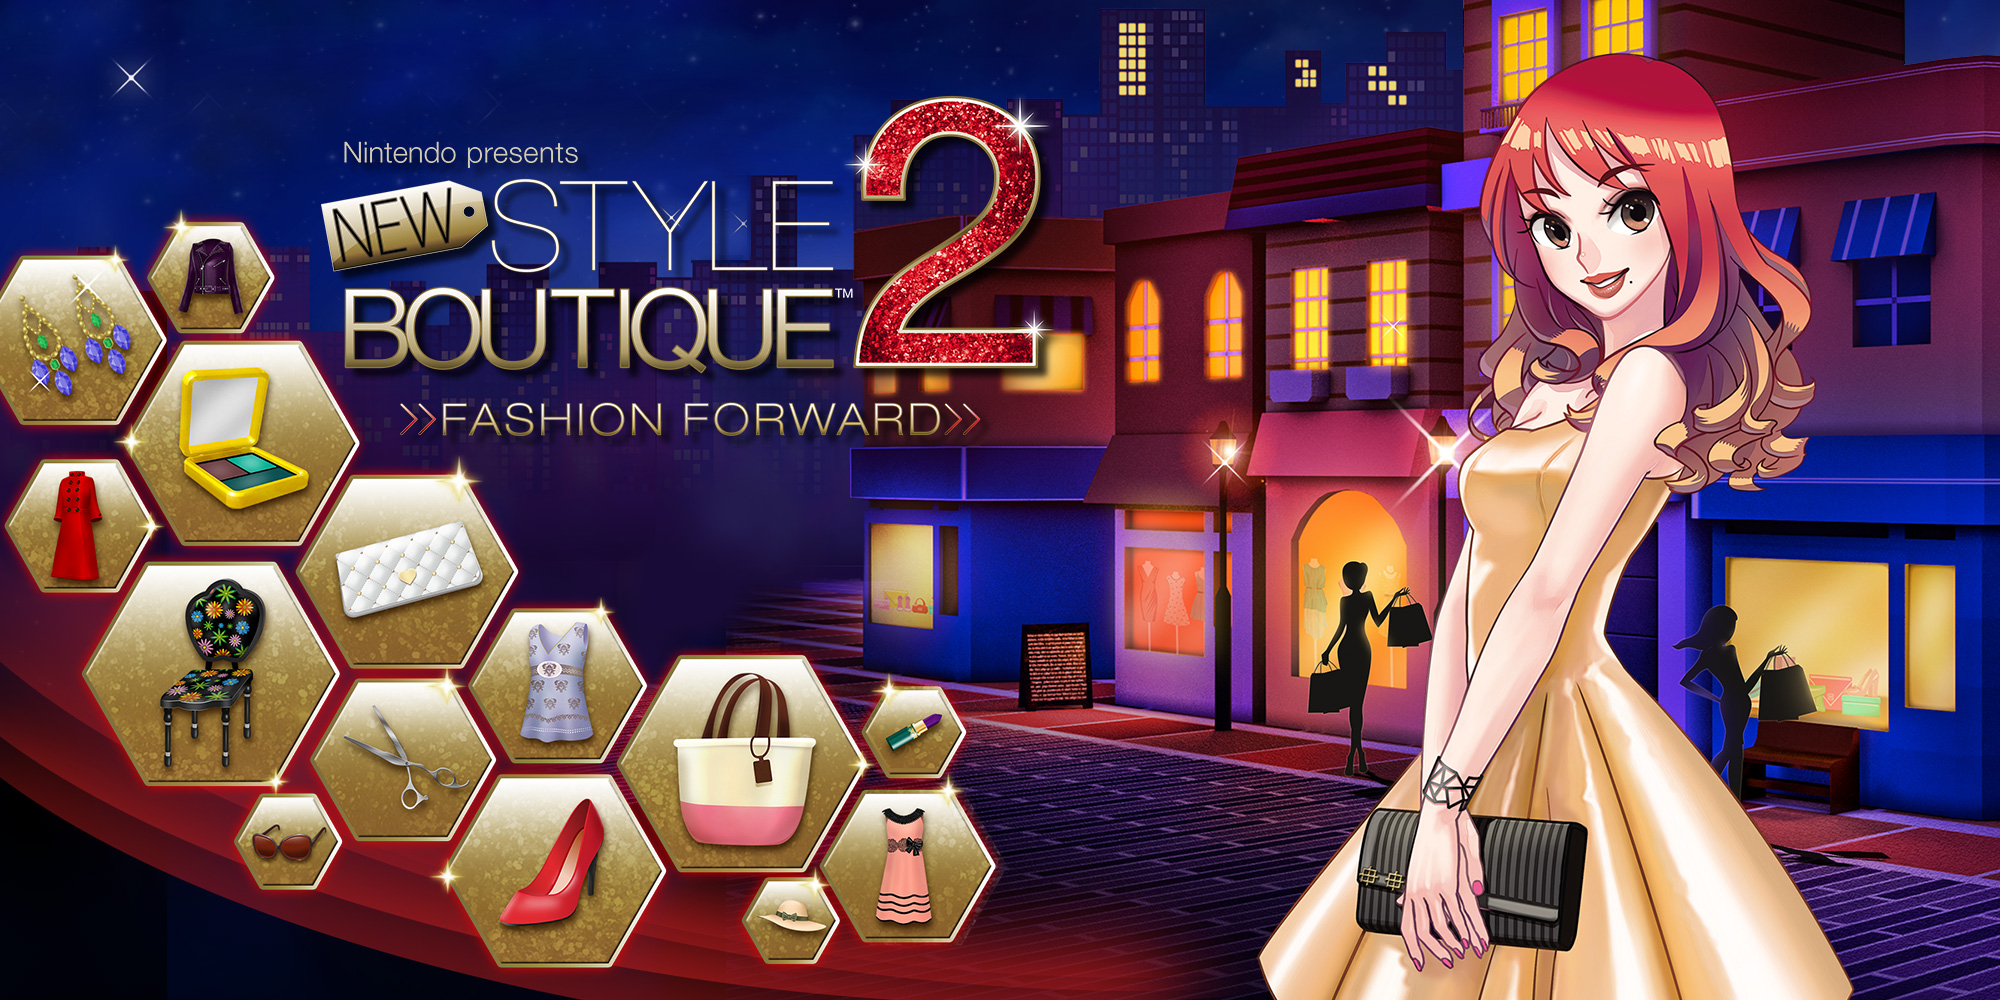 Nintendo Presents New Style Boutique 2 Fashion Forward Nintendo 3ds Games Nintendo